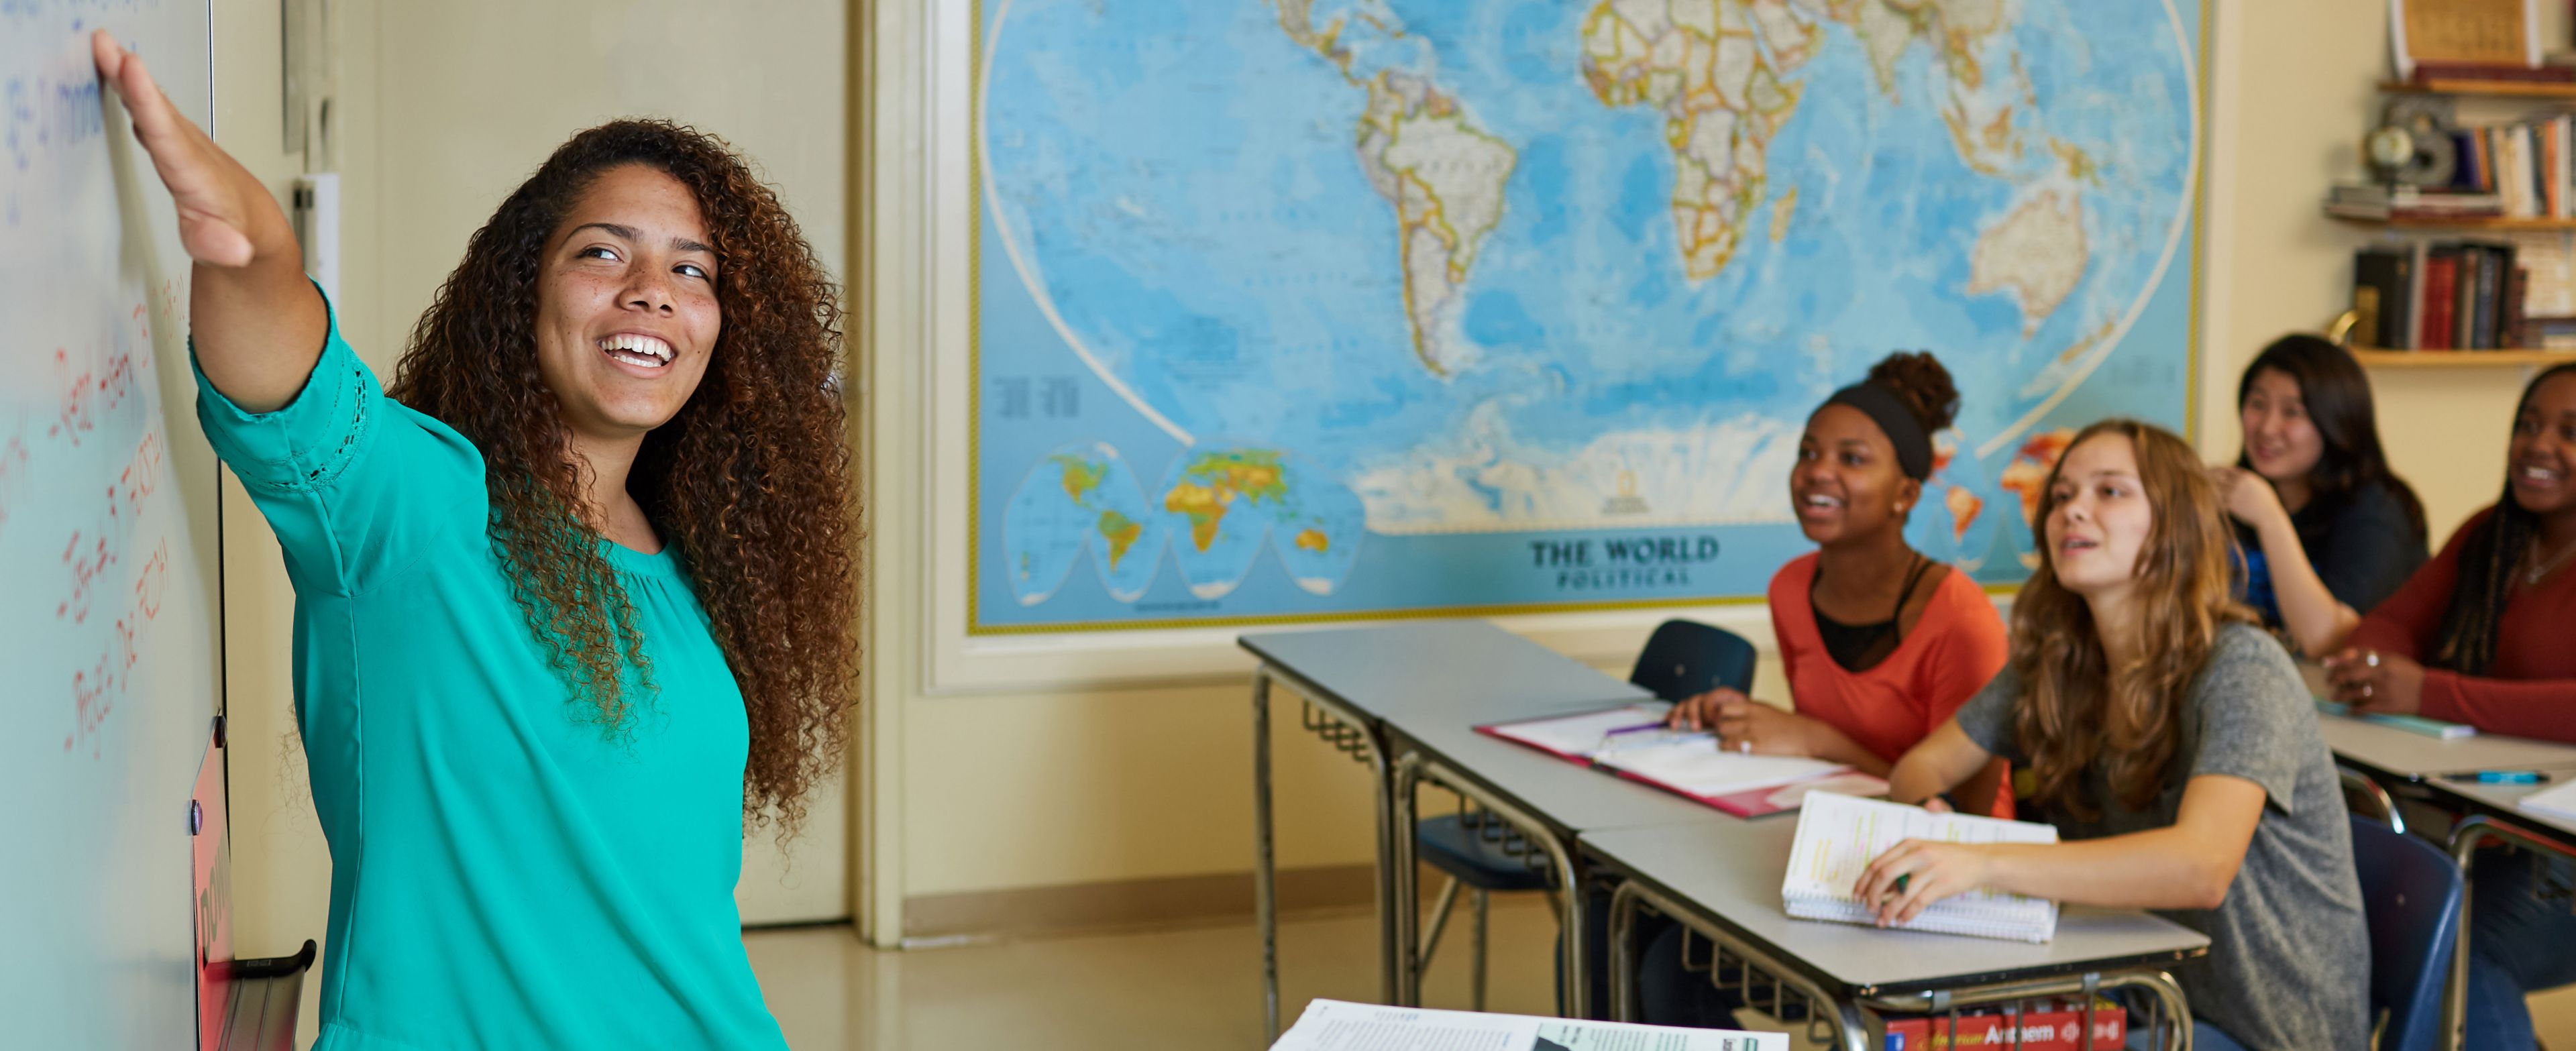 Master Of Education In Curriculum and Instruction - Gifted Education Online Degree Program Page